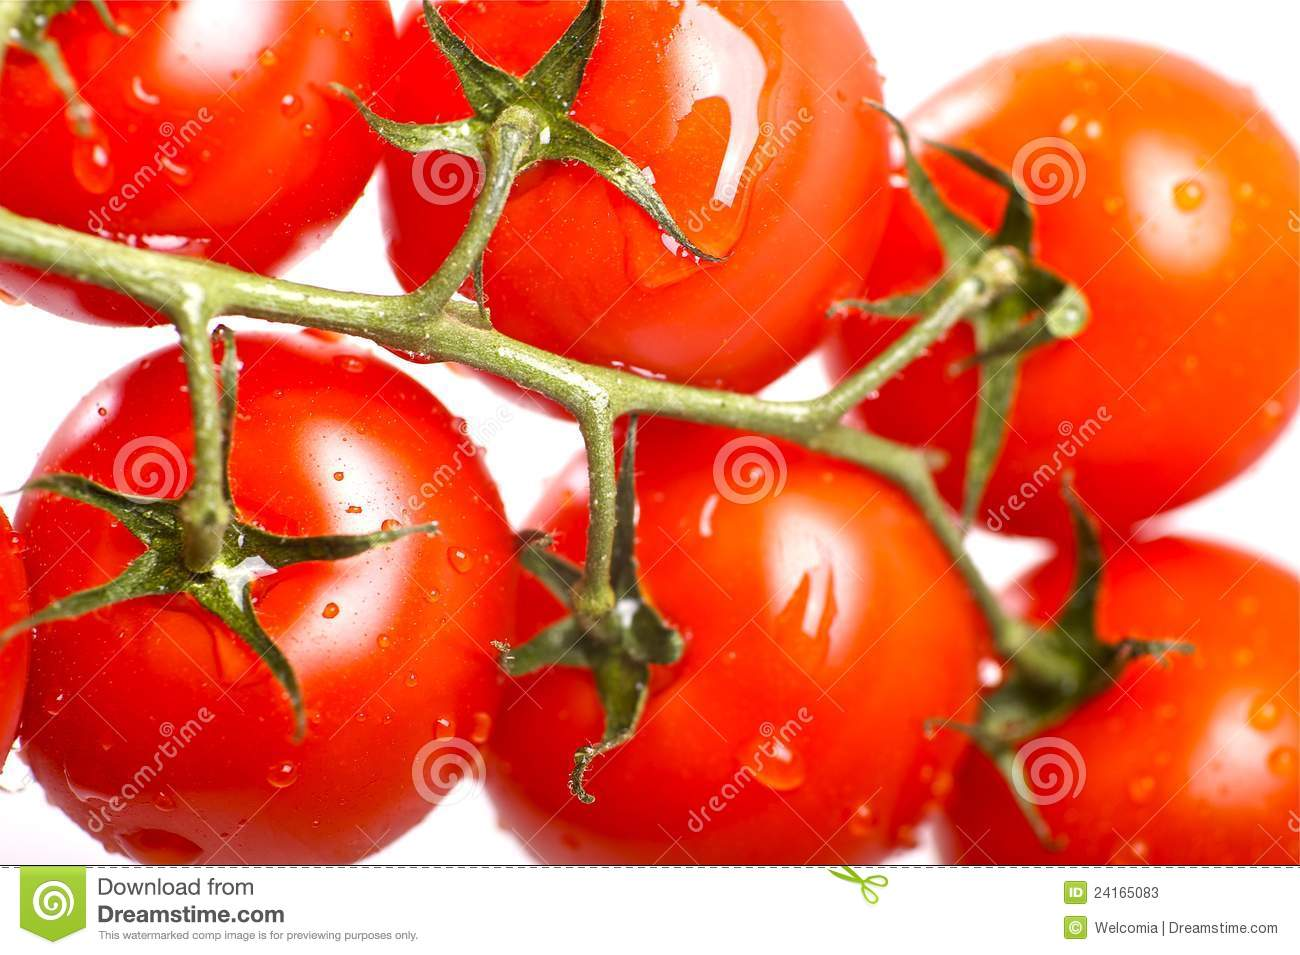 Fresh Red Tomatoes Stock Photos - Image: 24165083